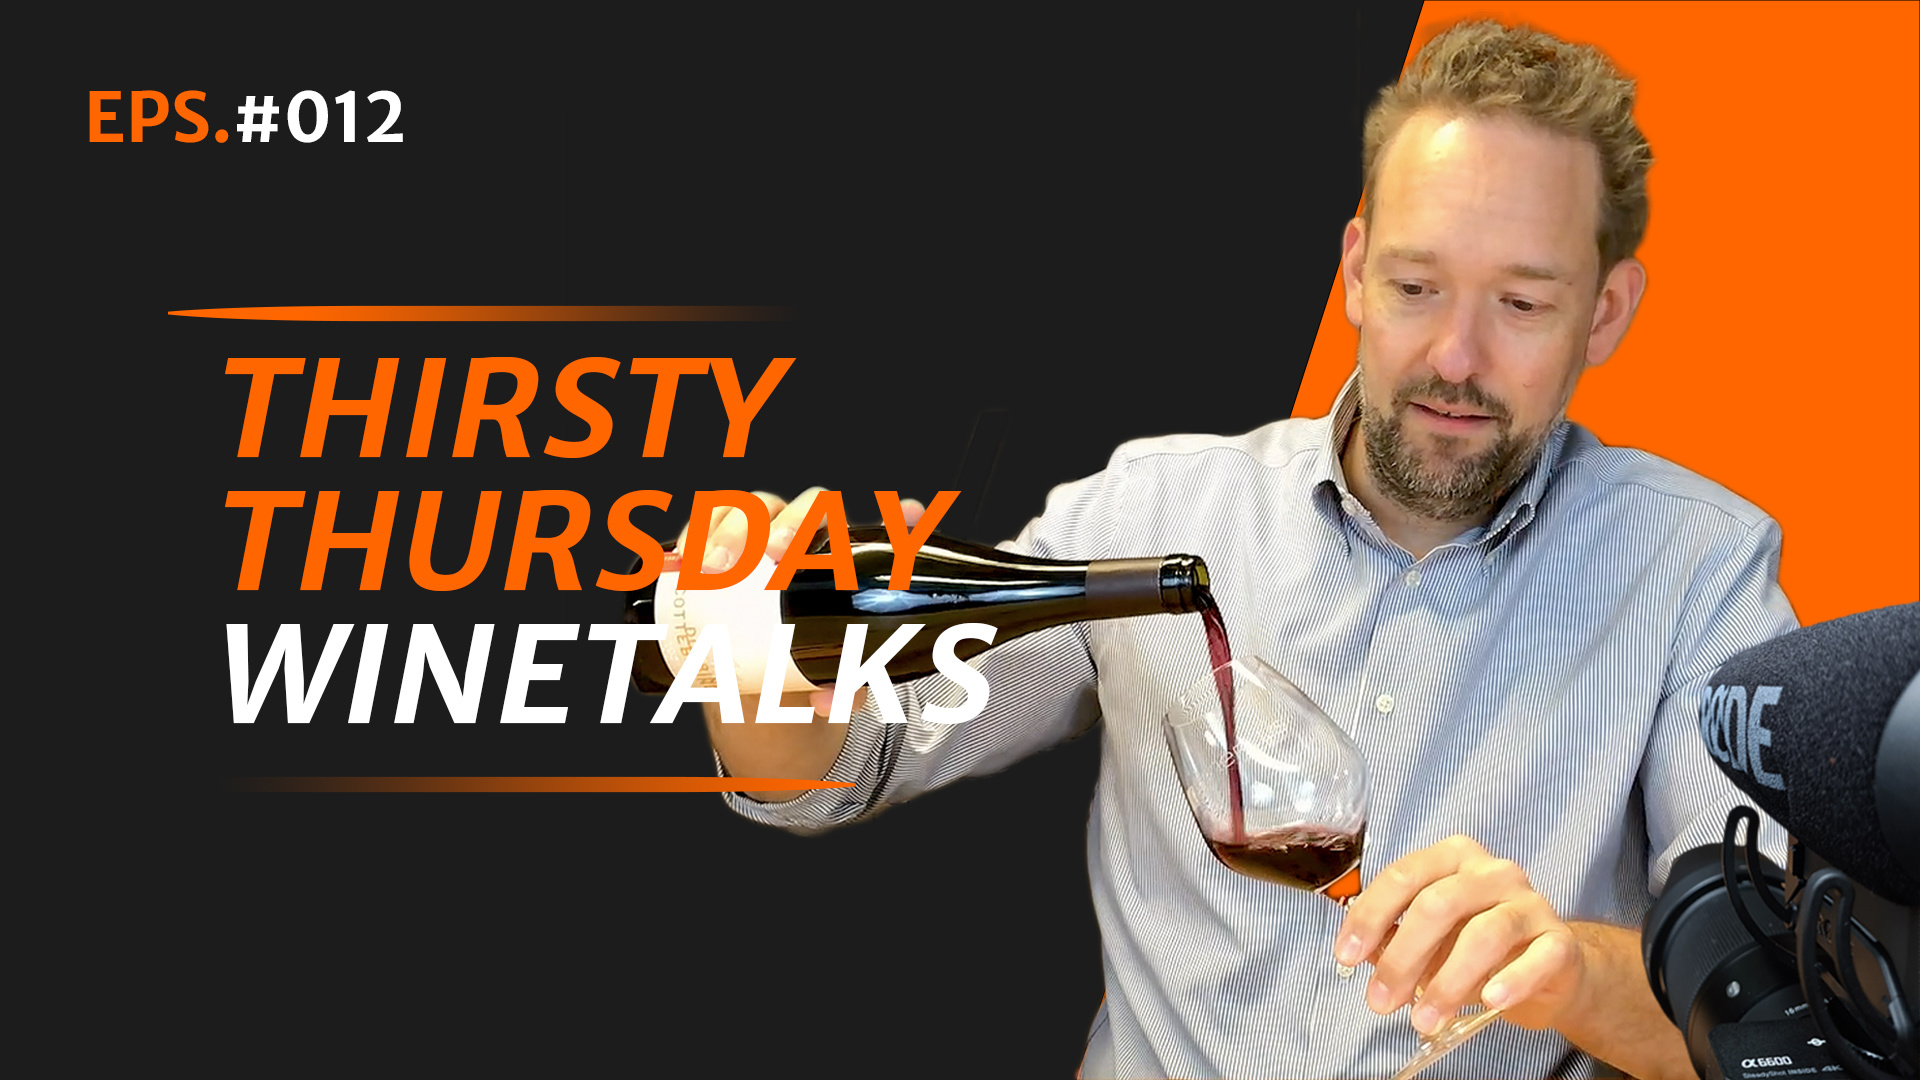 Thirsty Thirsday Winetalks #012